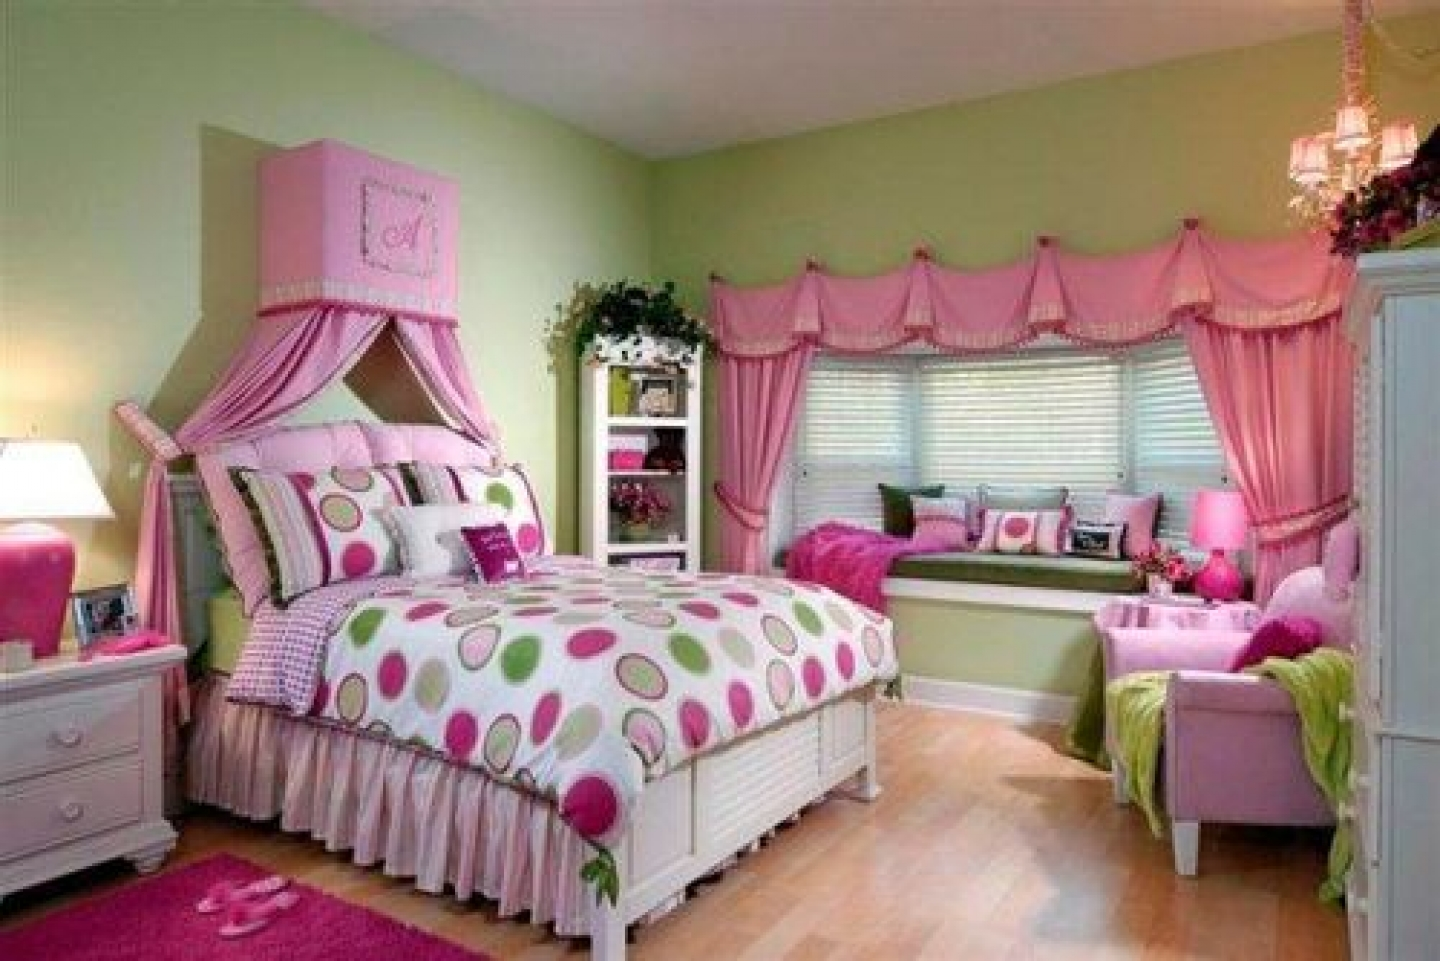 bedrooms bedrooms design girls girls bedr girls bedroom girls bedroom 1440x961